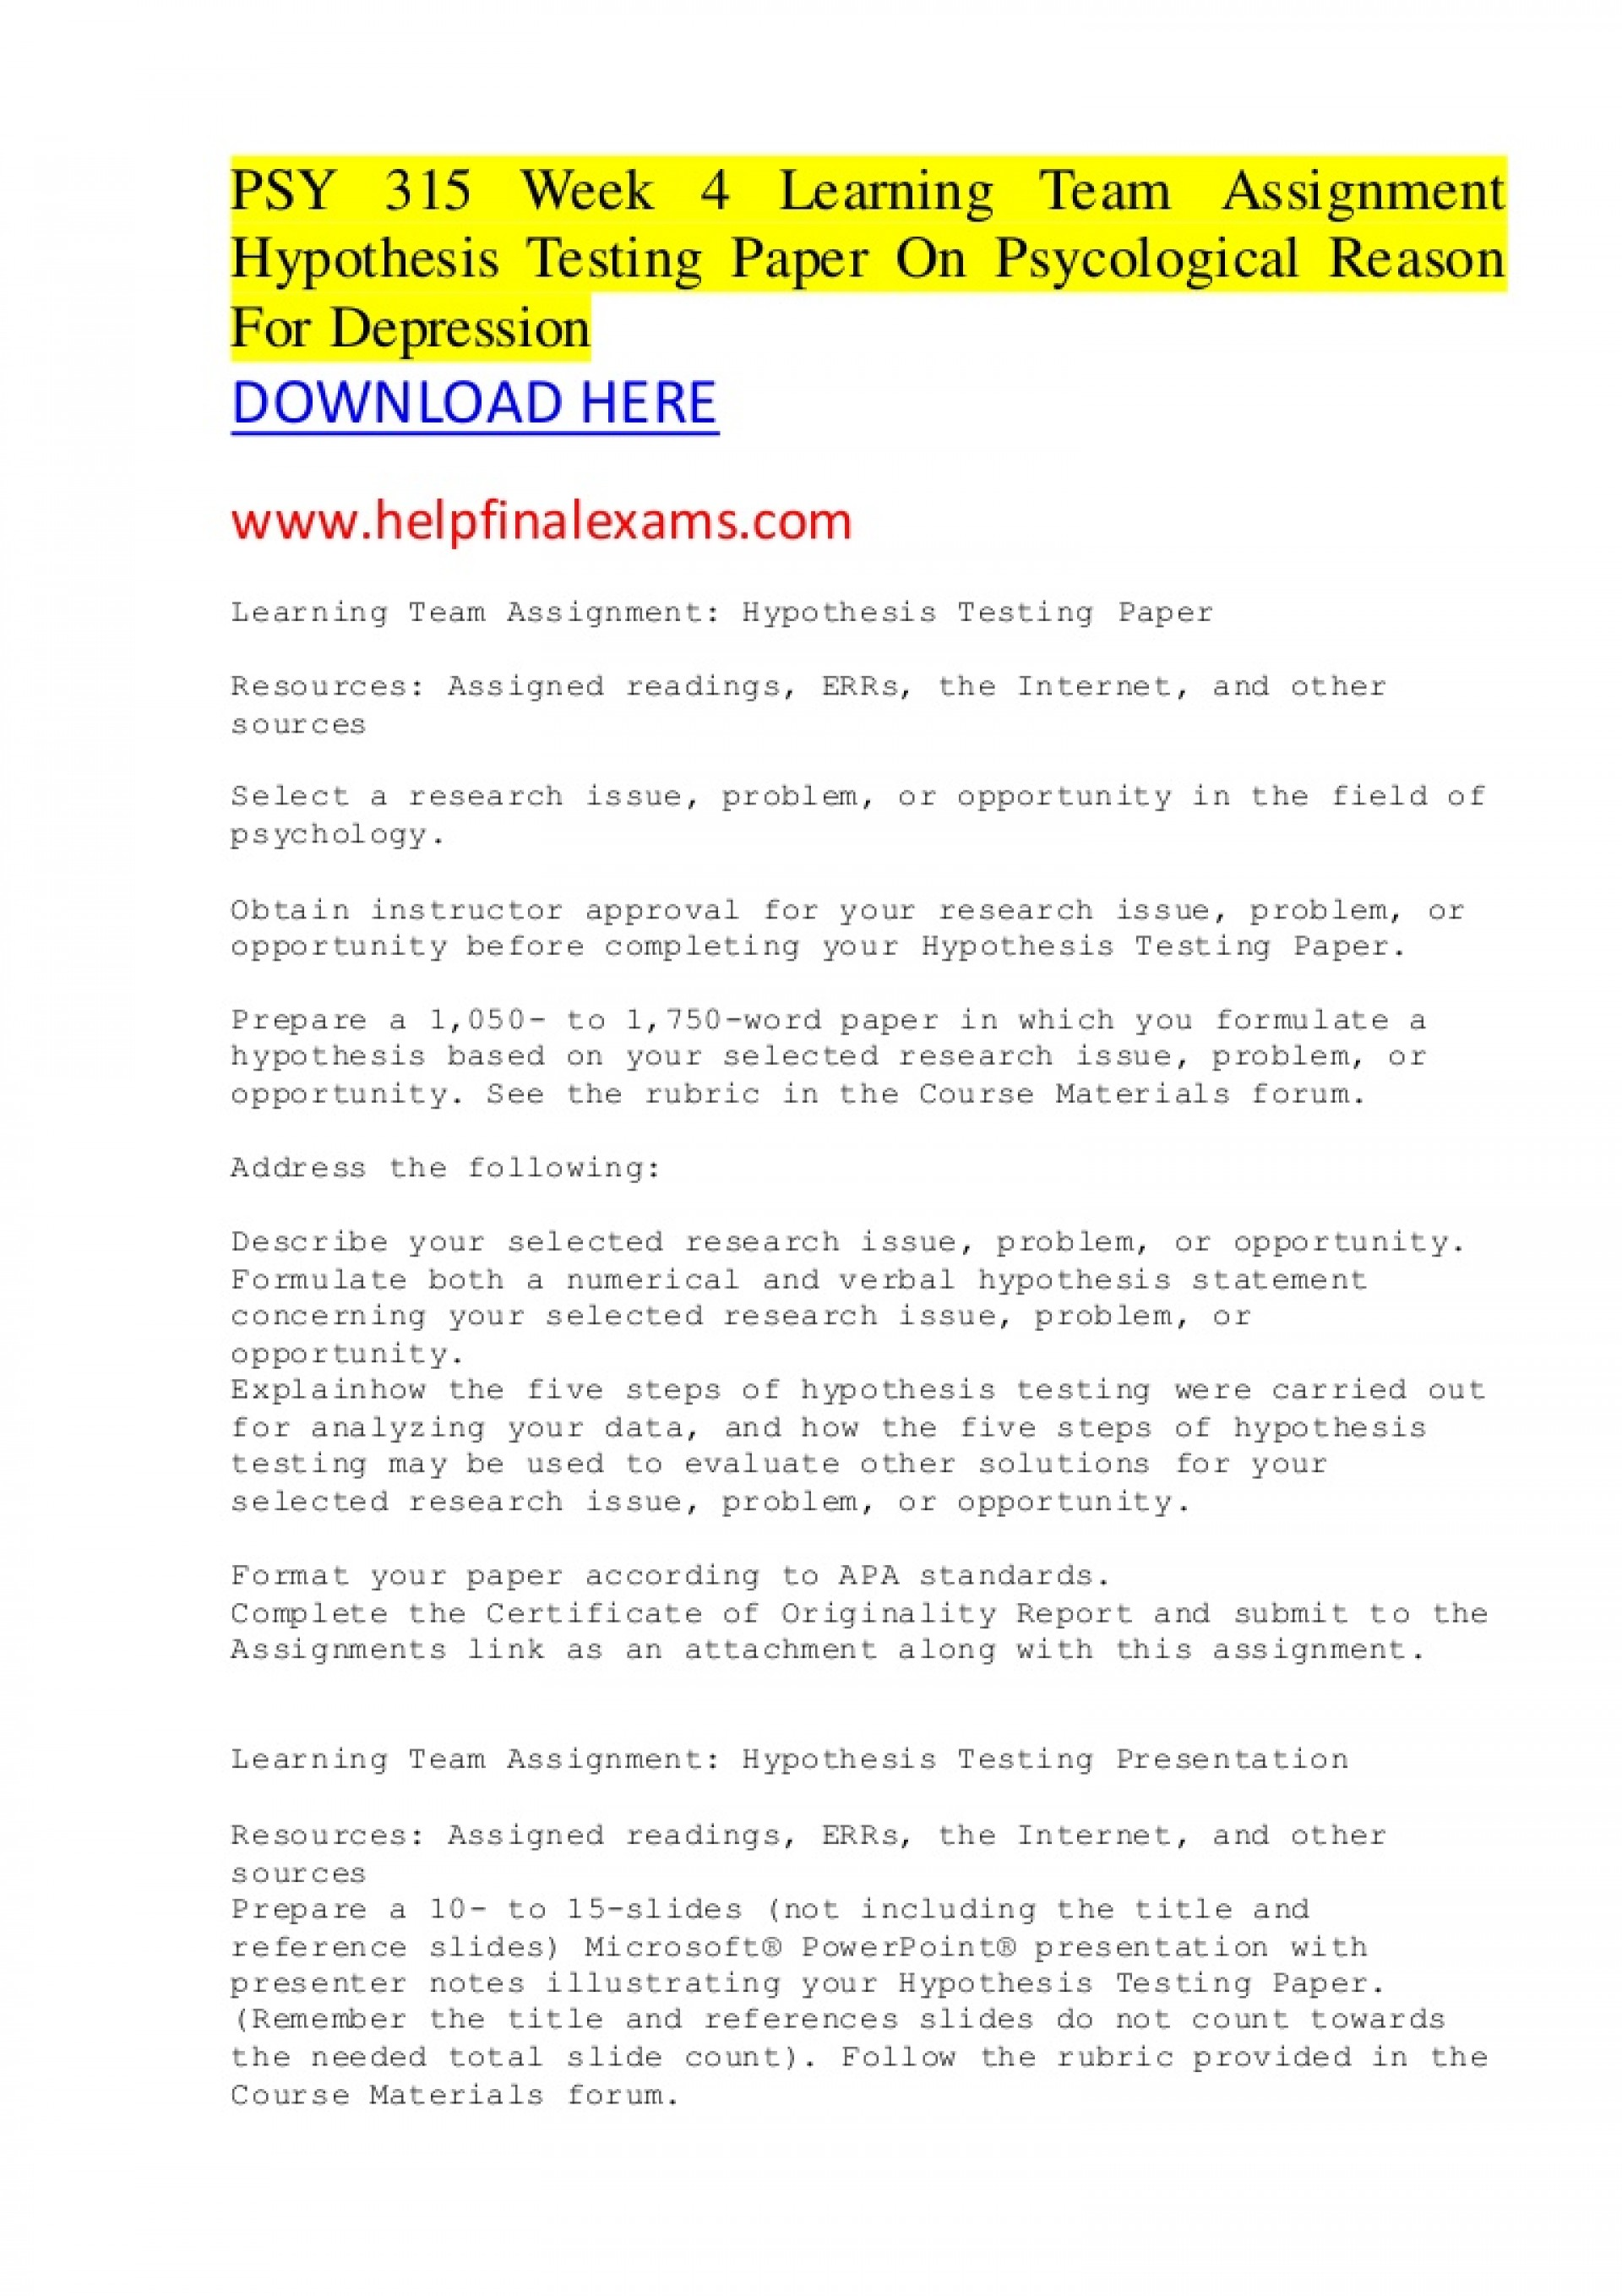 016 Hypothesis Testing In Research Paper Psy315week4learningteamassignmenthypothesistestingpaperonpsycologicalreasonfordepression Thumbnail Awesome Pdf 1920